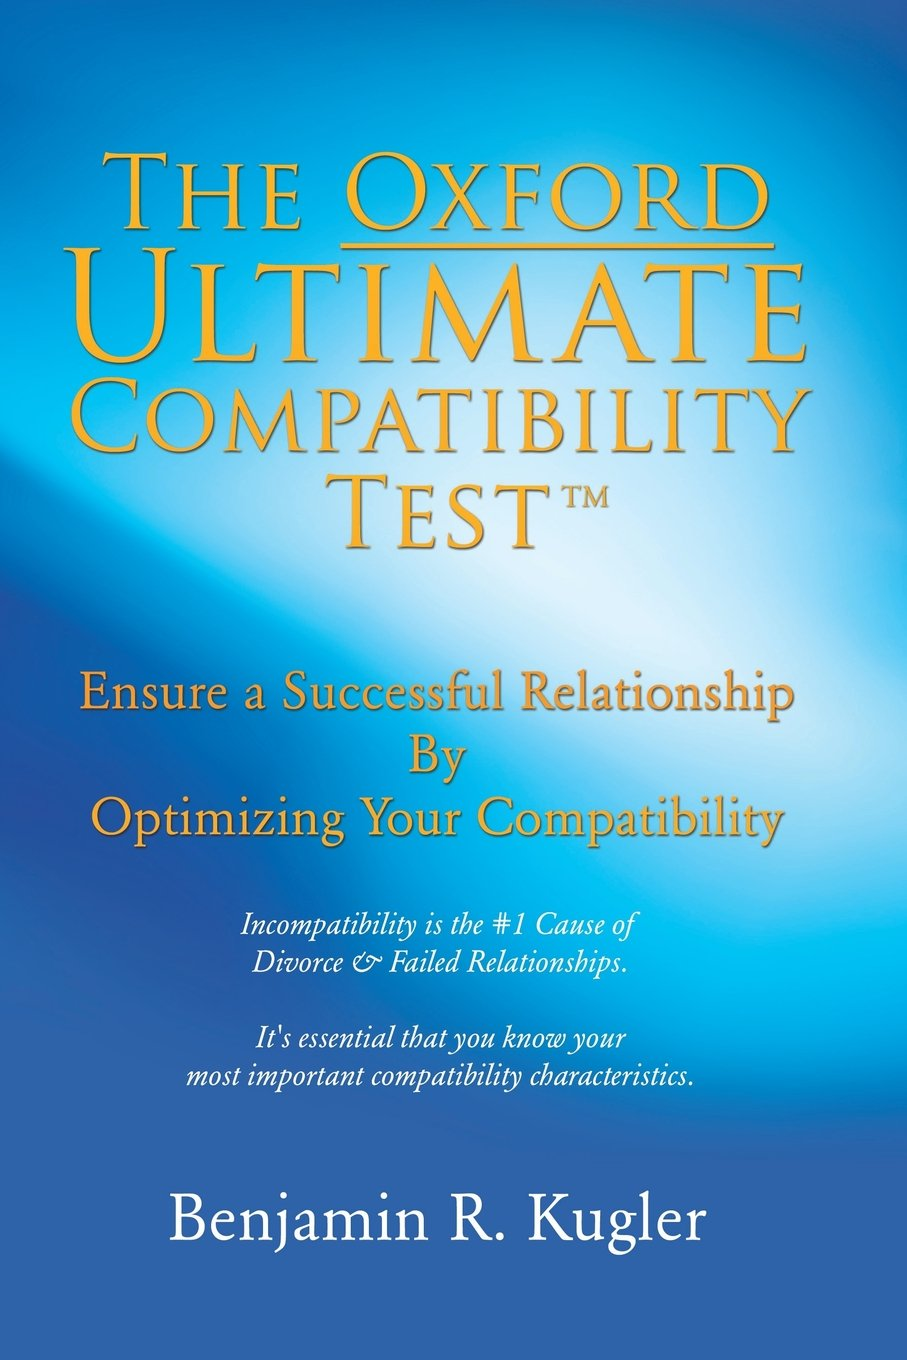 The Oxford Ultimate Compatibility Test TM: Benjamin R